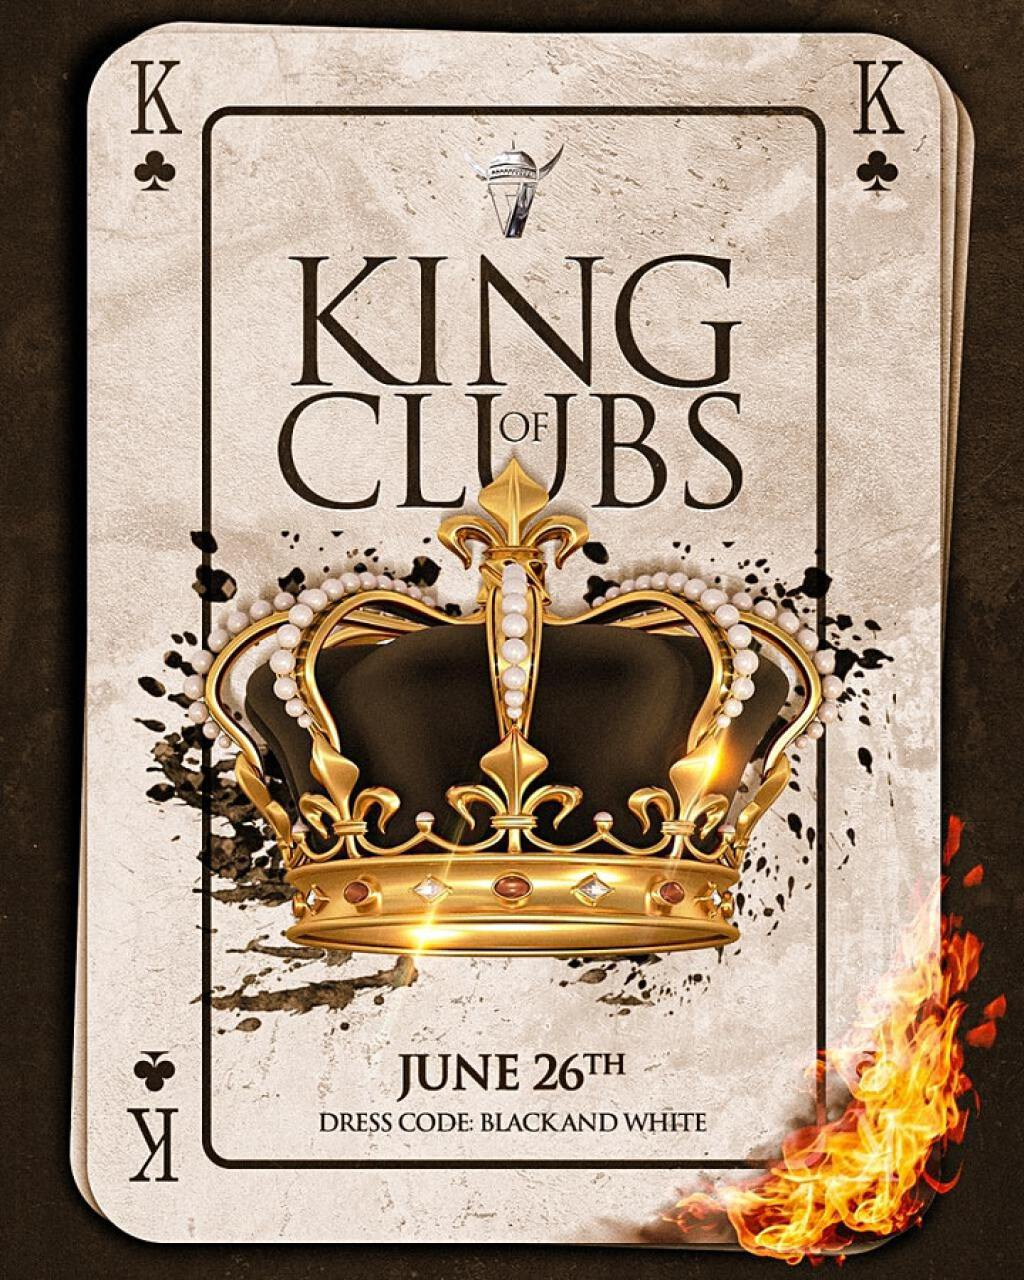 King Of Clubs flyer or graphic.